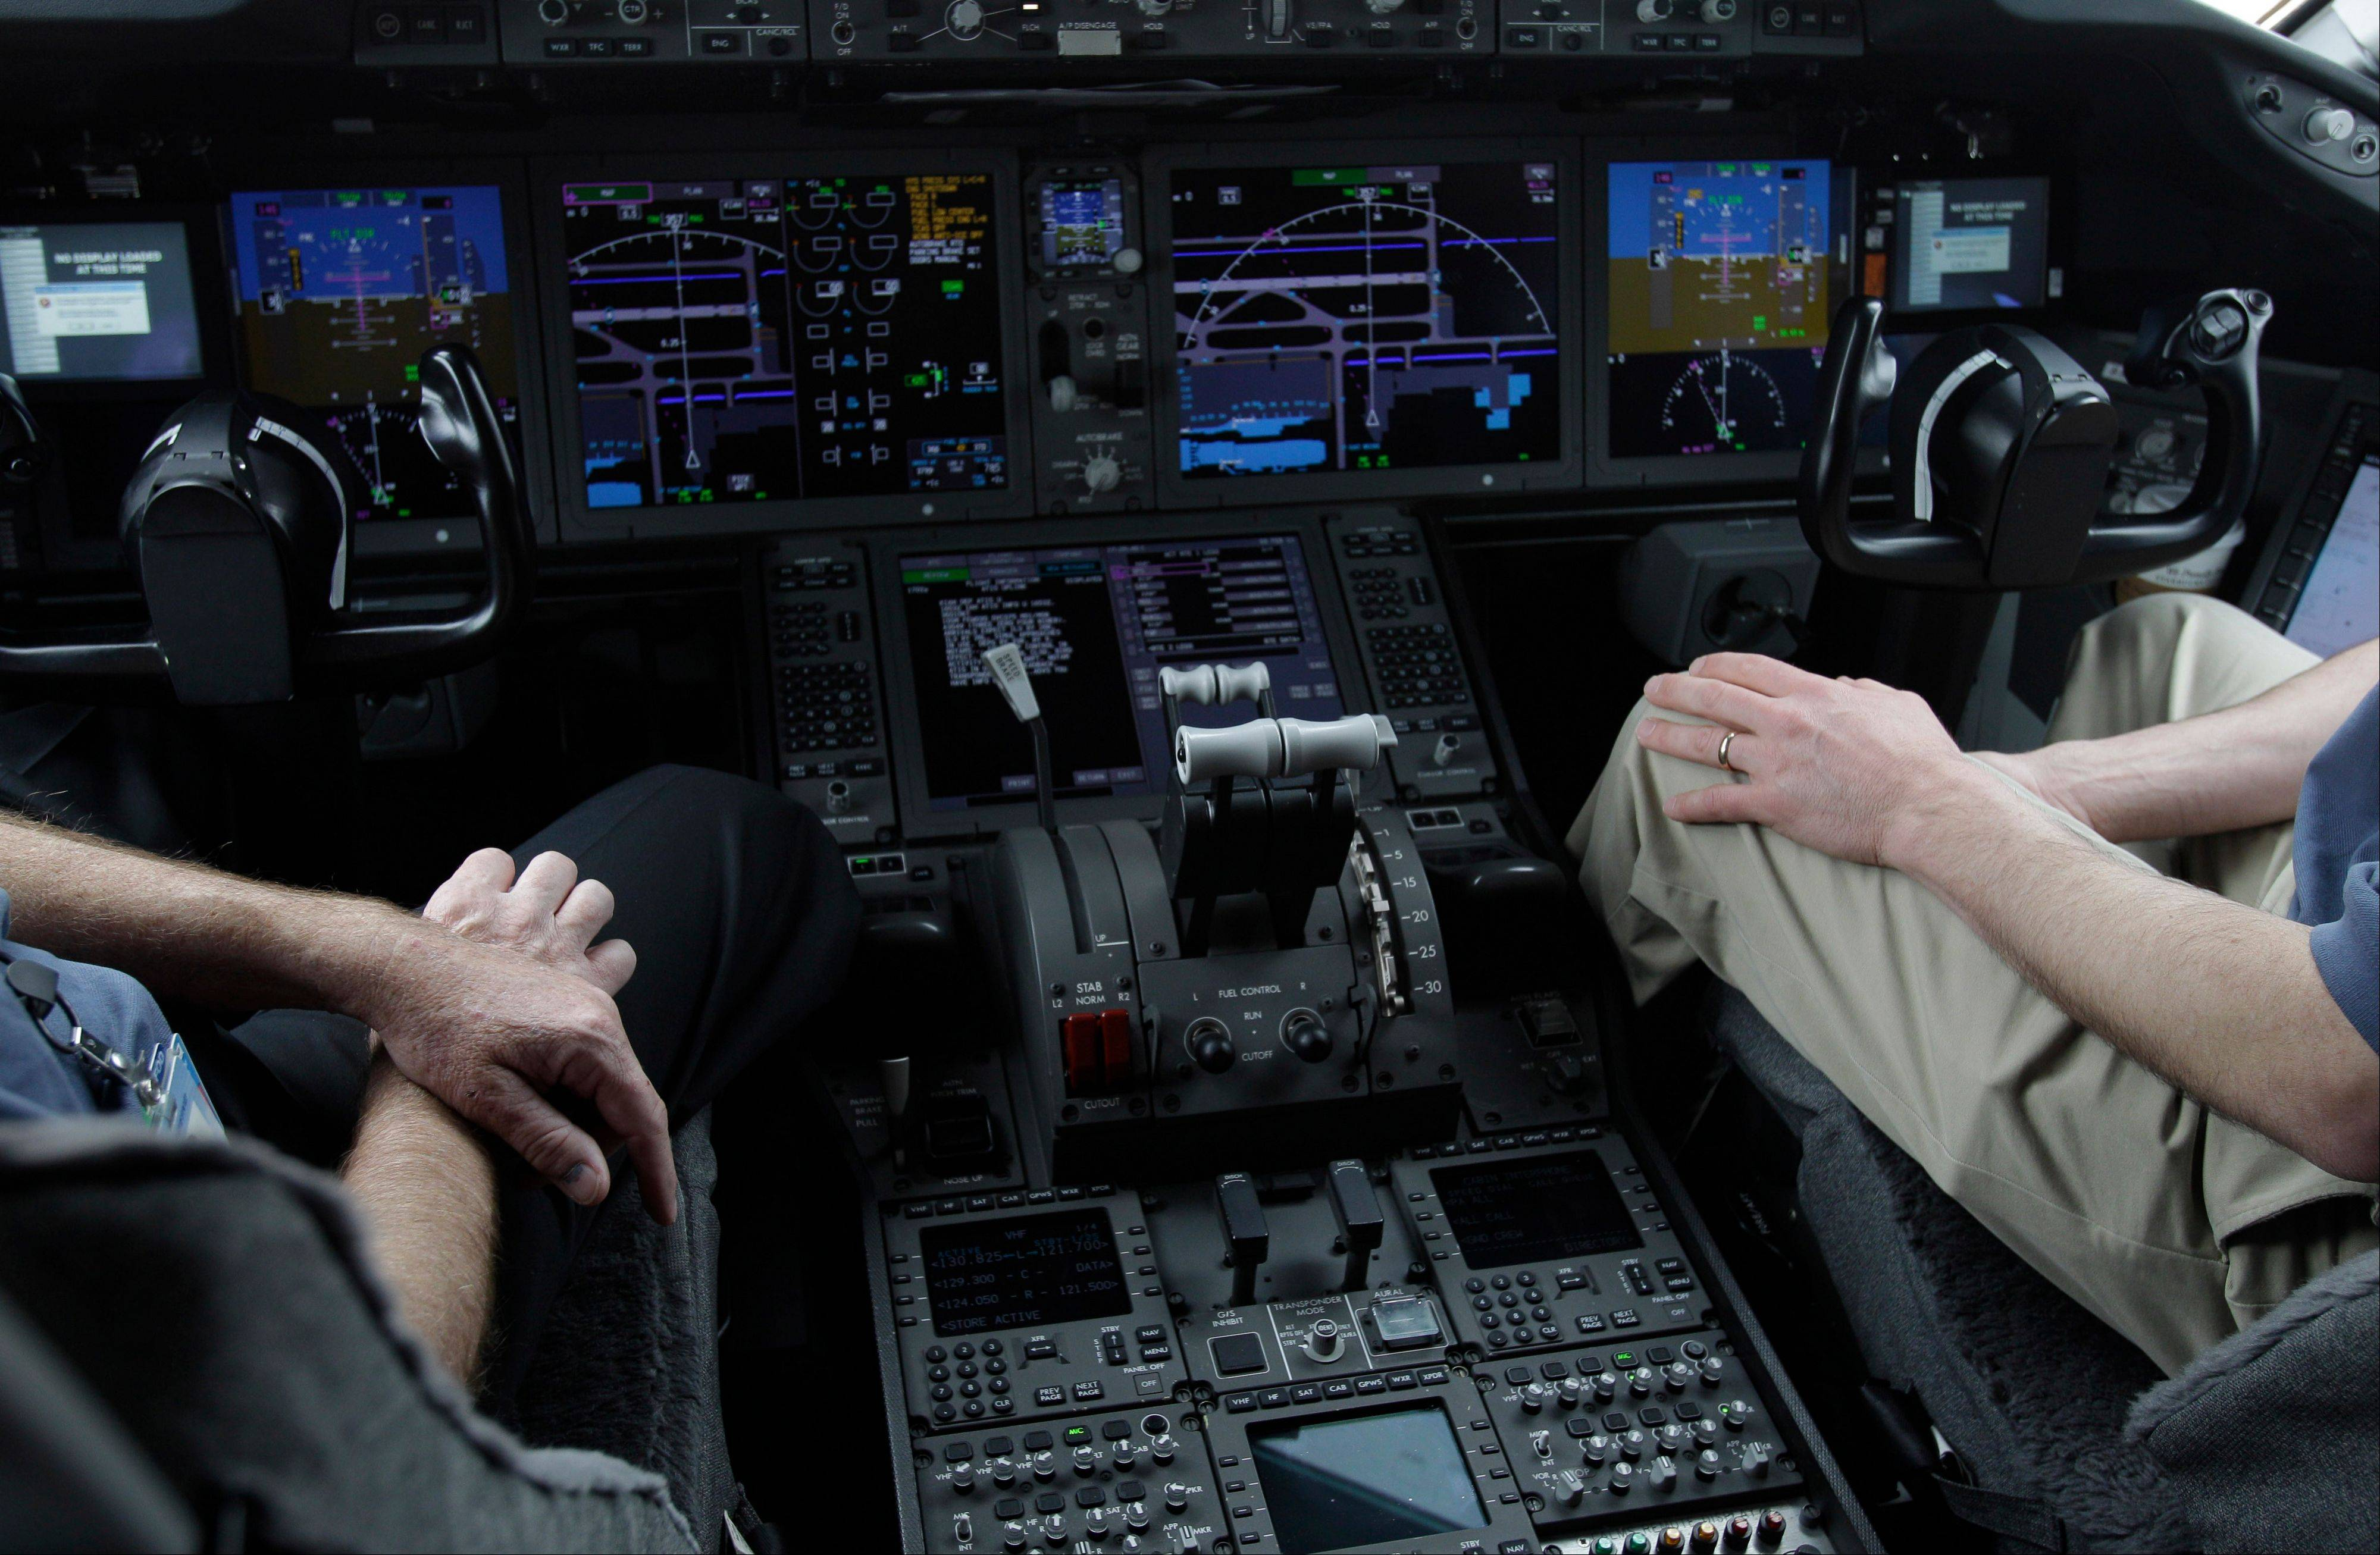 In this Feb. 3, 2011, photo, the cockpit of Boeings' new 787 Dreamliner is photographed in Houston. Pilots are becoming so reliant on the computer systems that do most of the flying in todayís airliners that on the rare occasions when something goes wrong, theyíre sometimes unprepared to take control, according to aviation safety experts and government and industry studies.